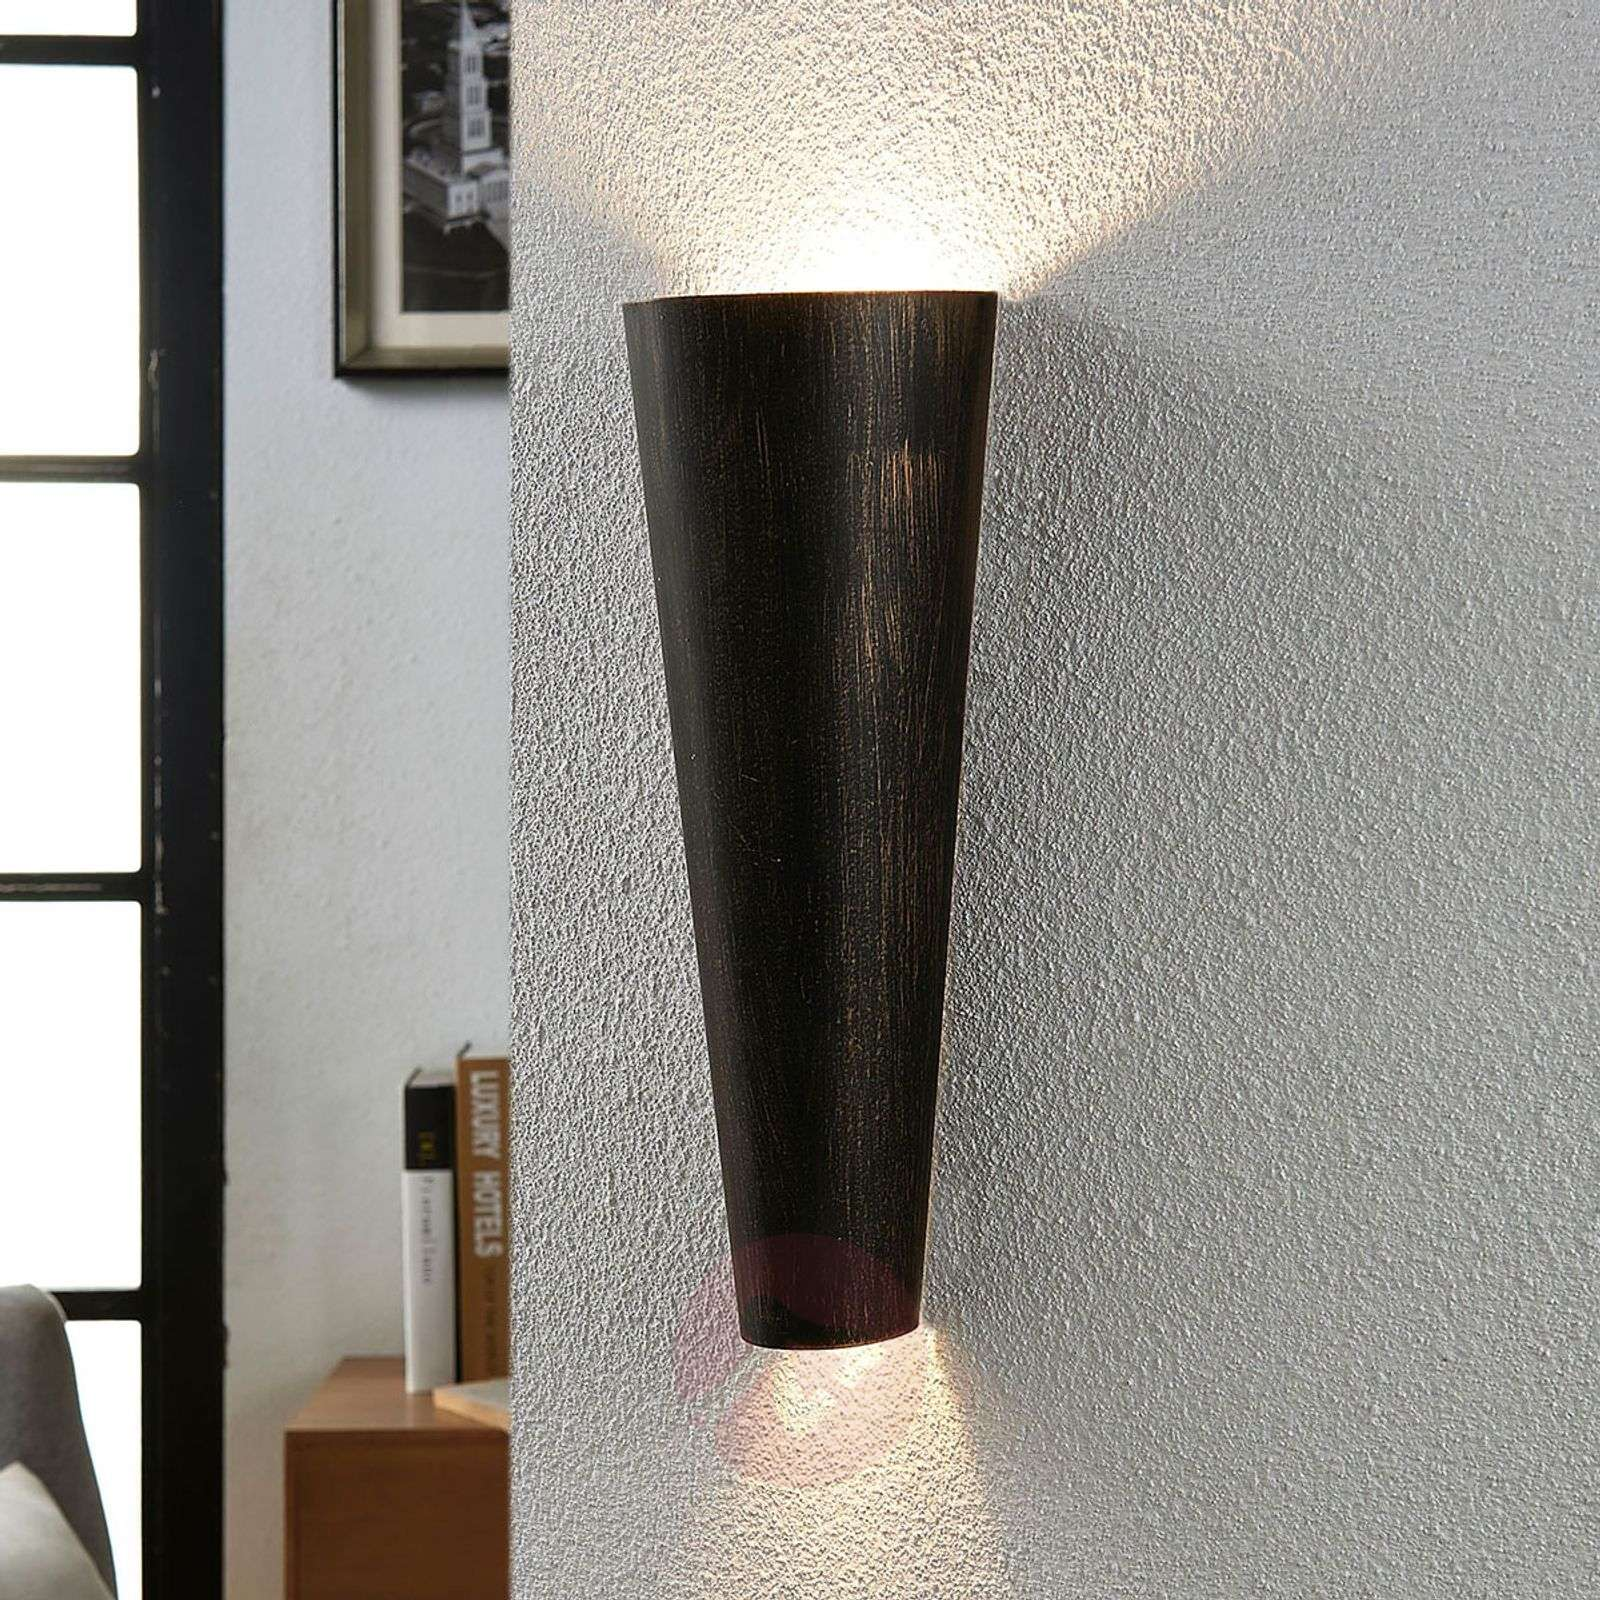 Acquista applique led conan nero oro lampade